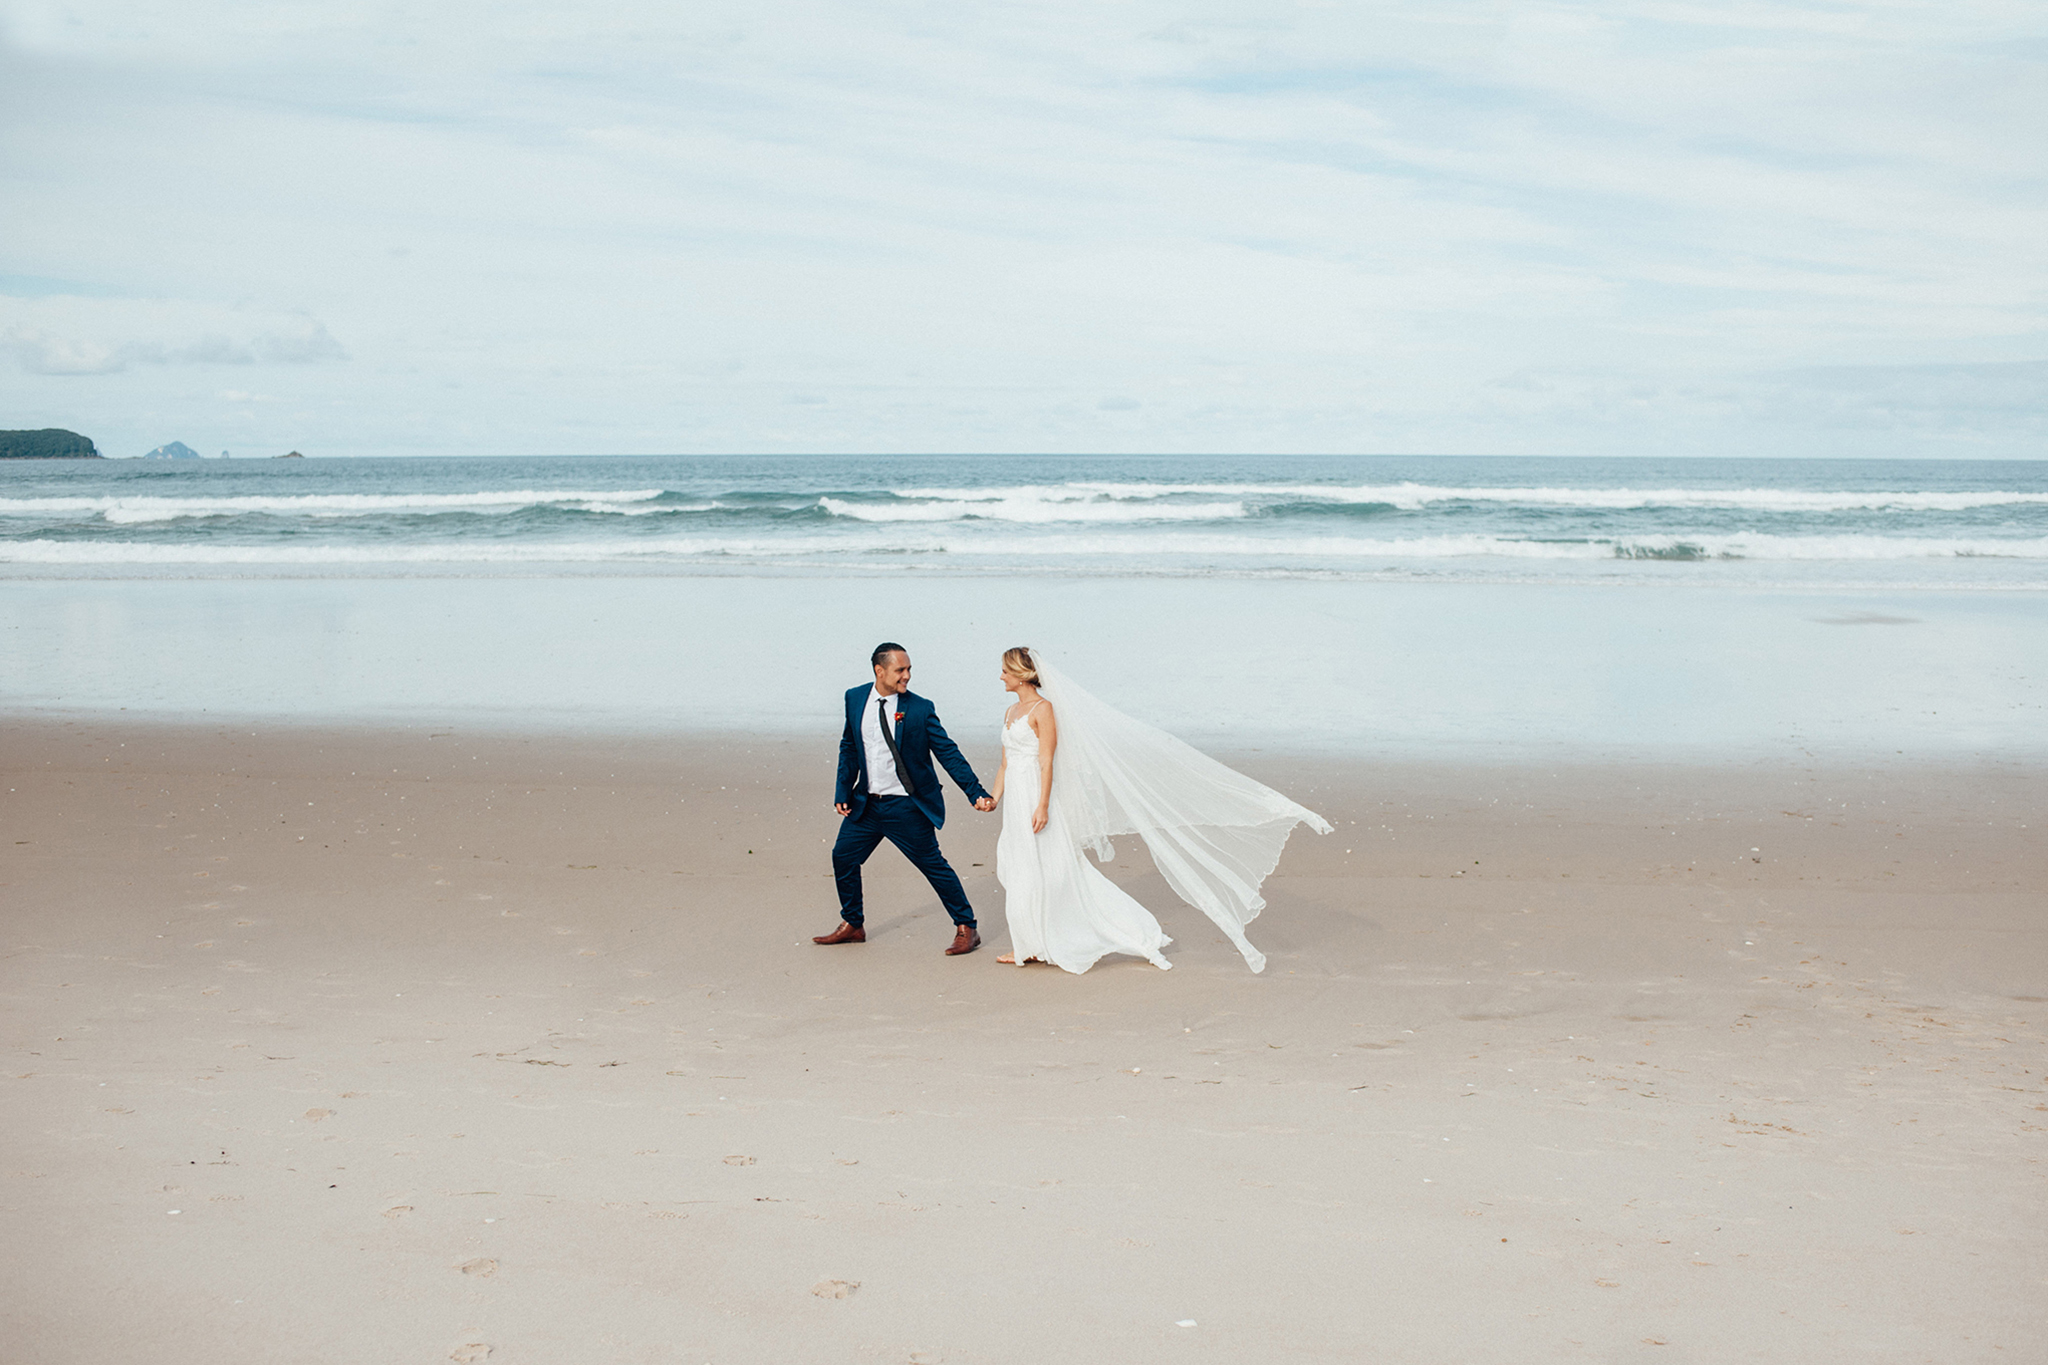 Wedding photography opoutere bride and groom beach adventure